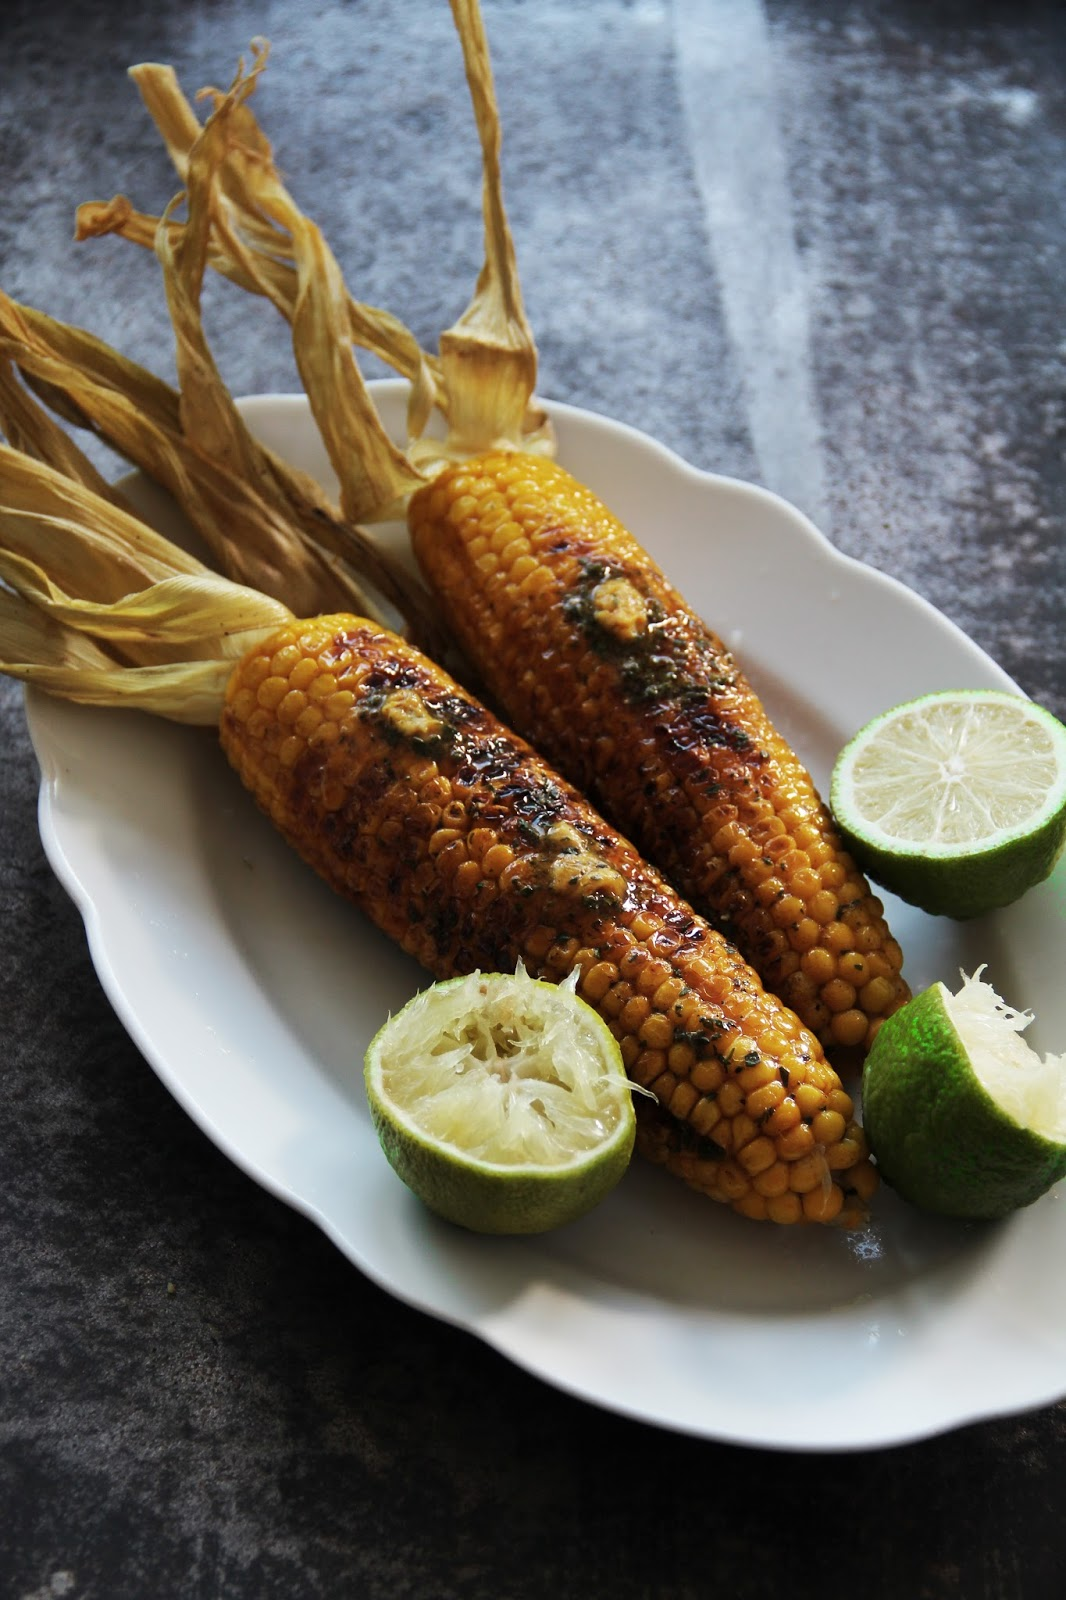 Flavorful, Buttered Corn On The Cob